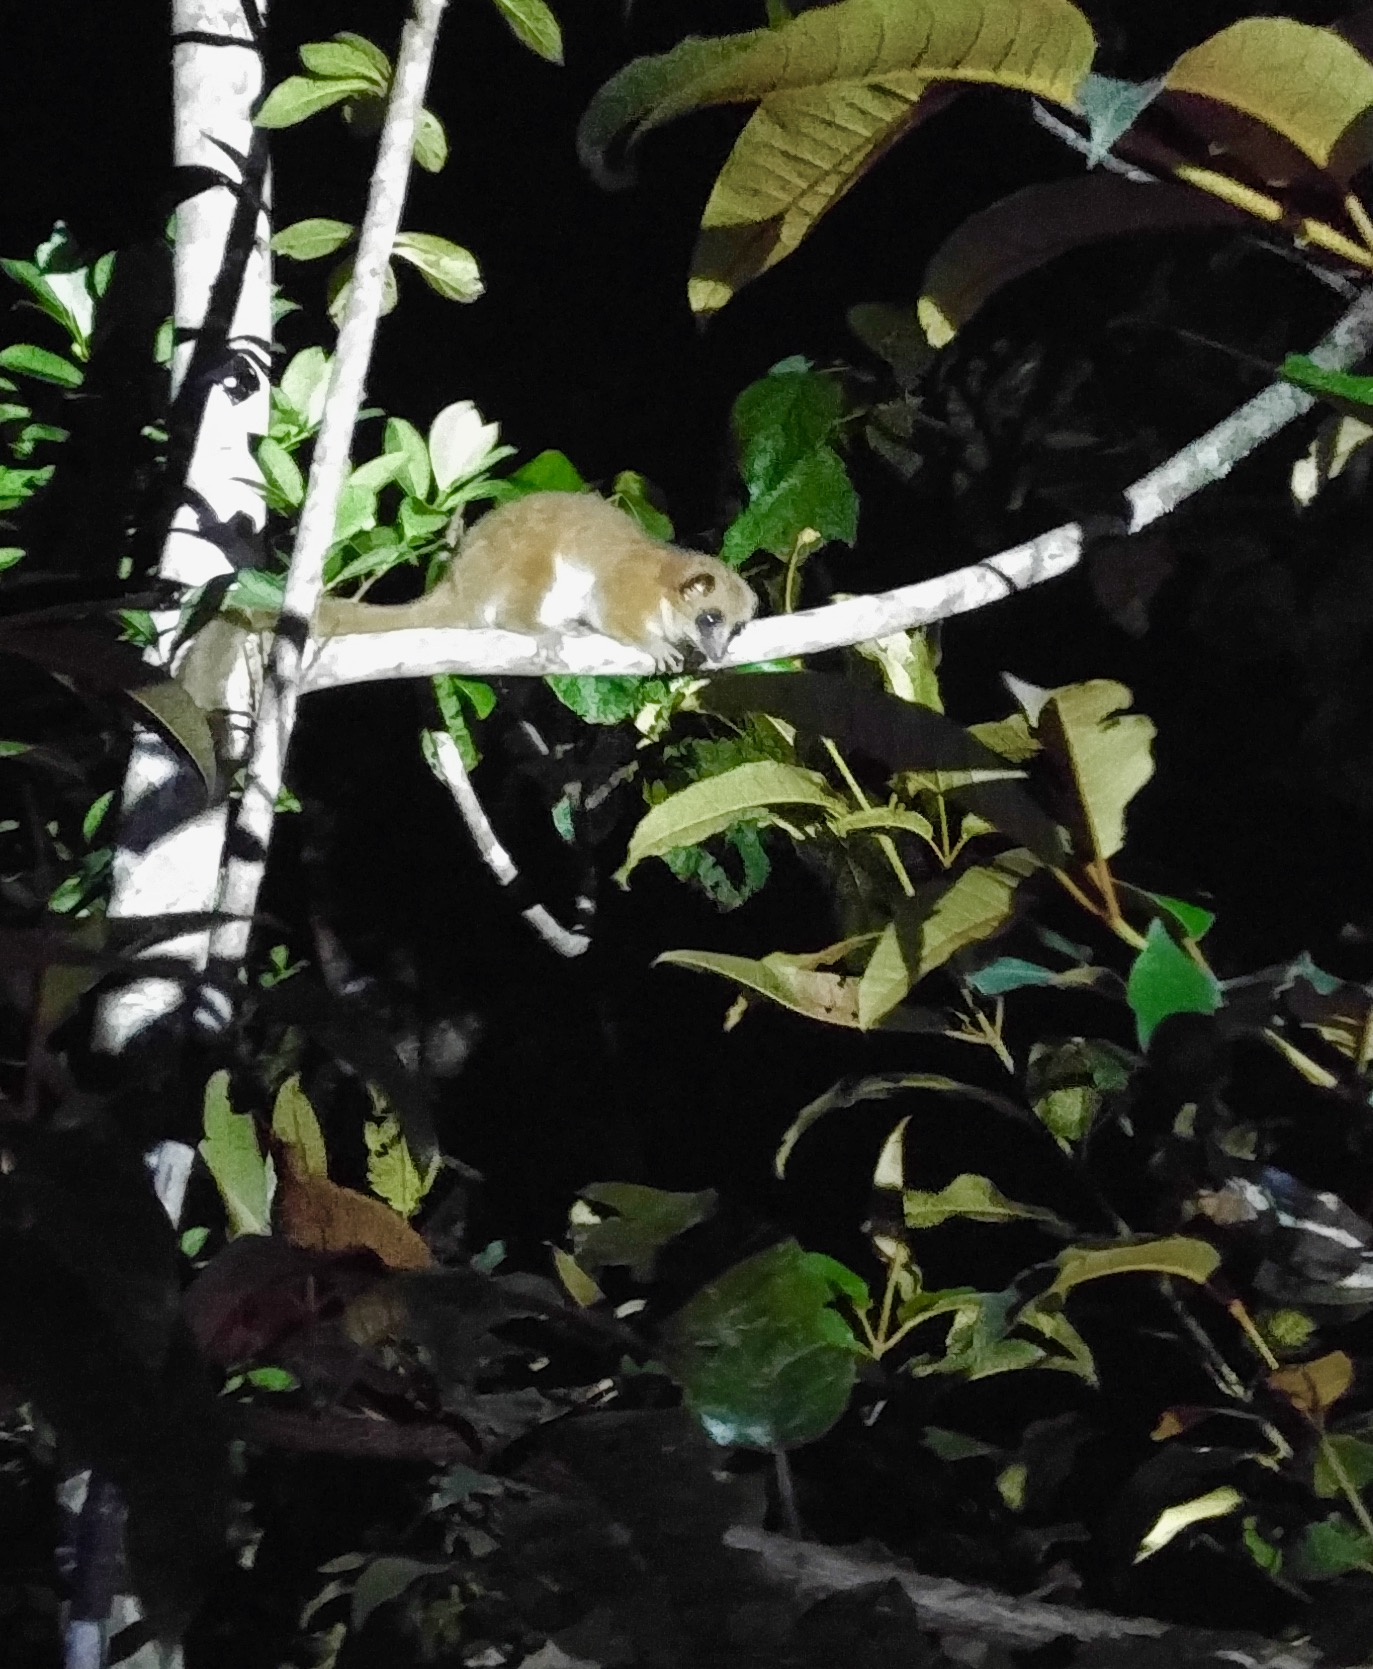 A nocturnal lemur was the audience at night.